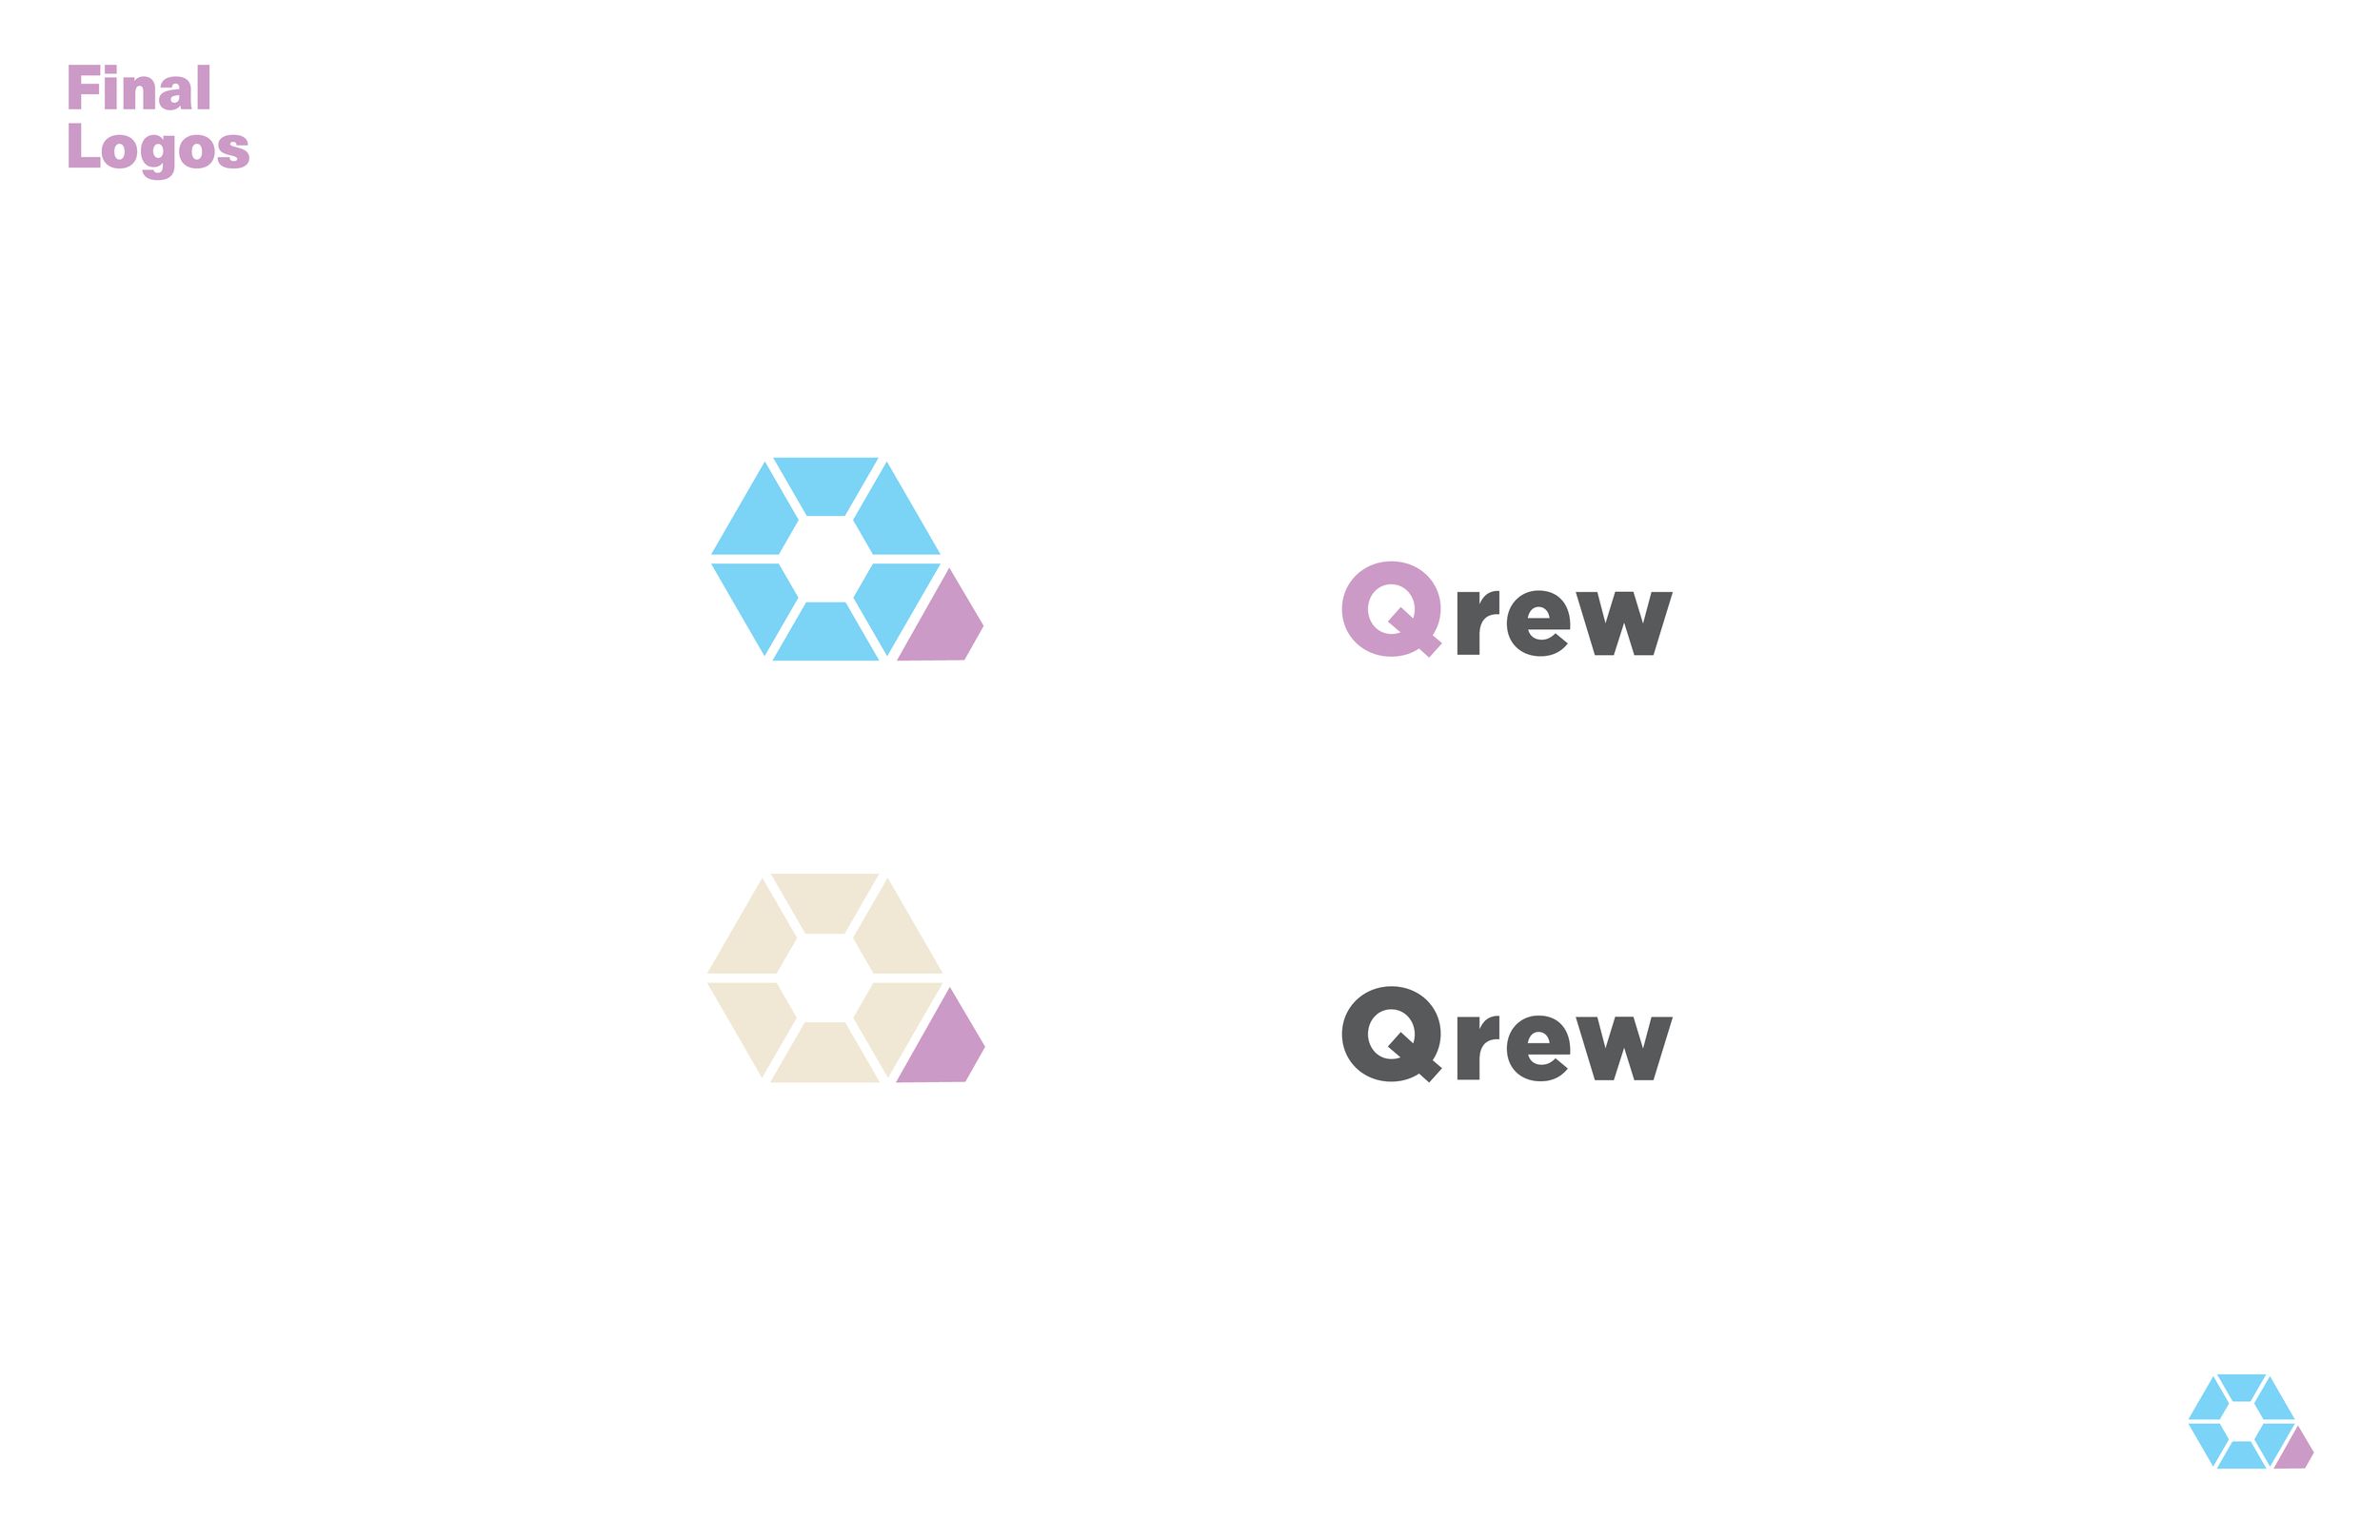 Qrew3.png